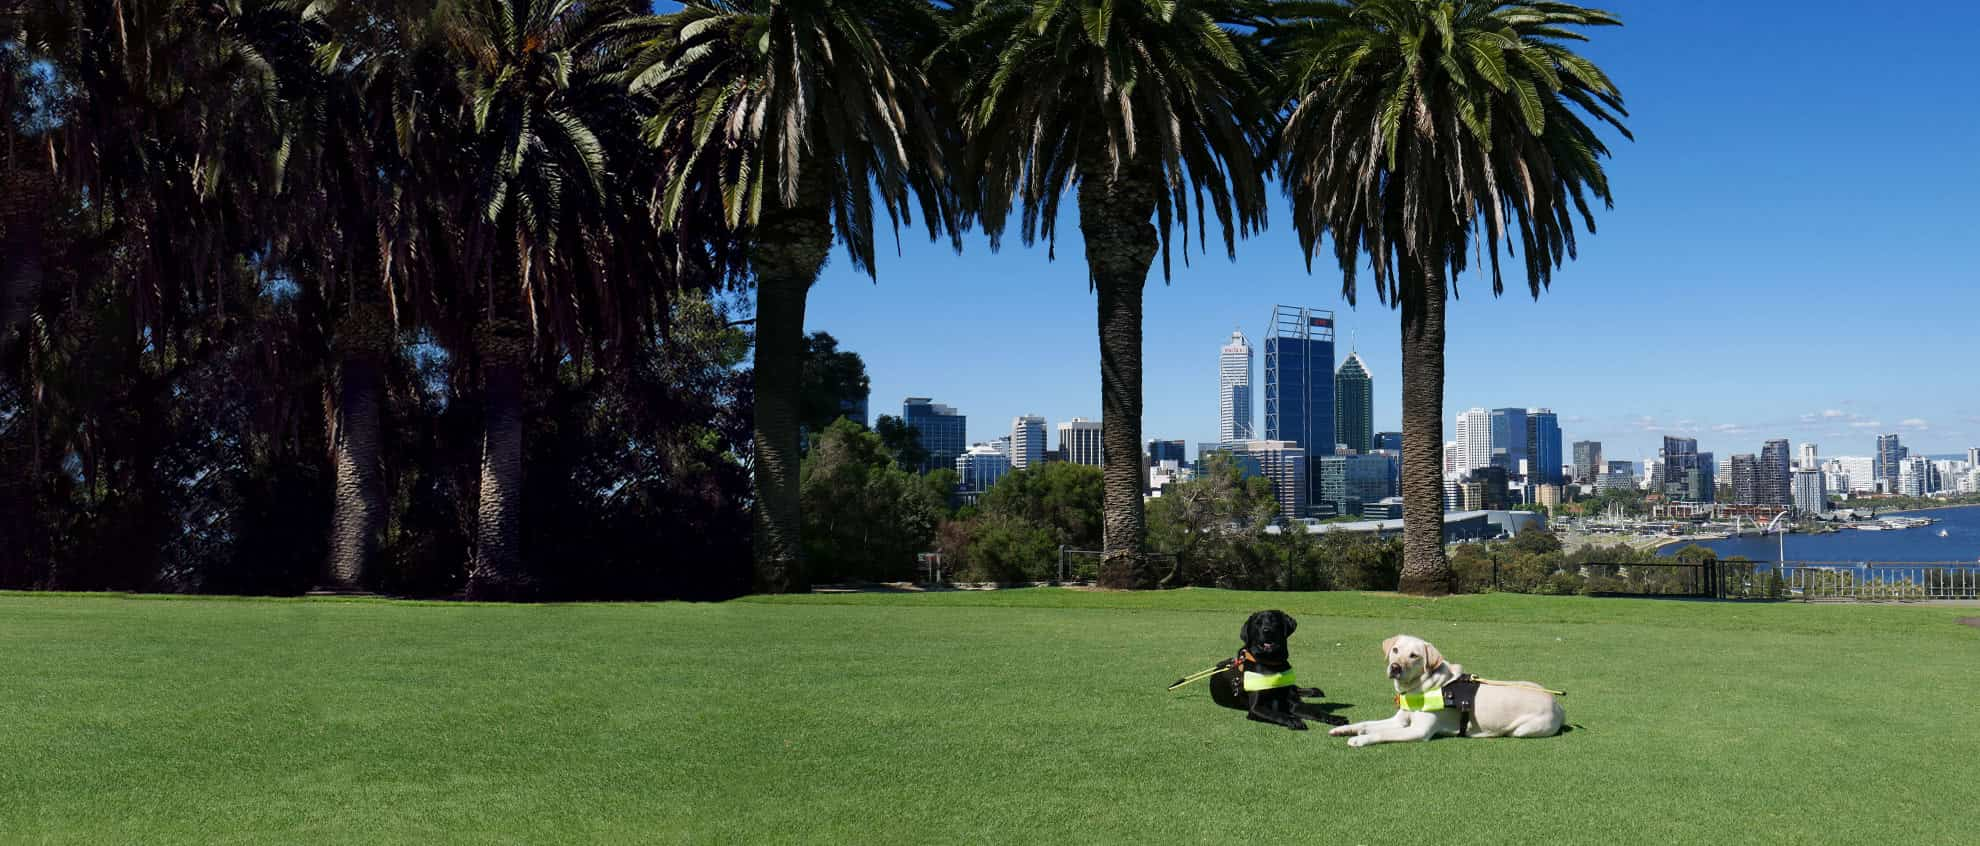 Guide Dogs sitting in Kings Park, overlooking Elizabeth Quay